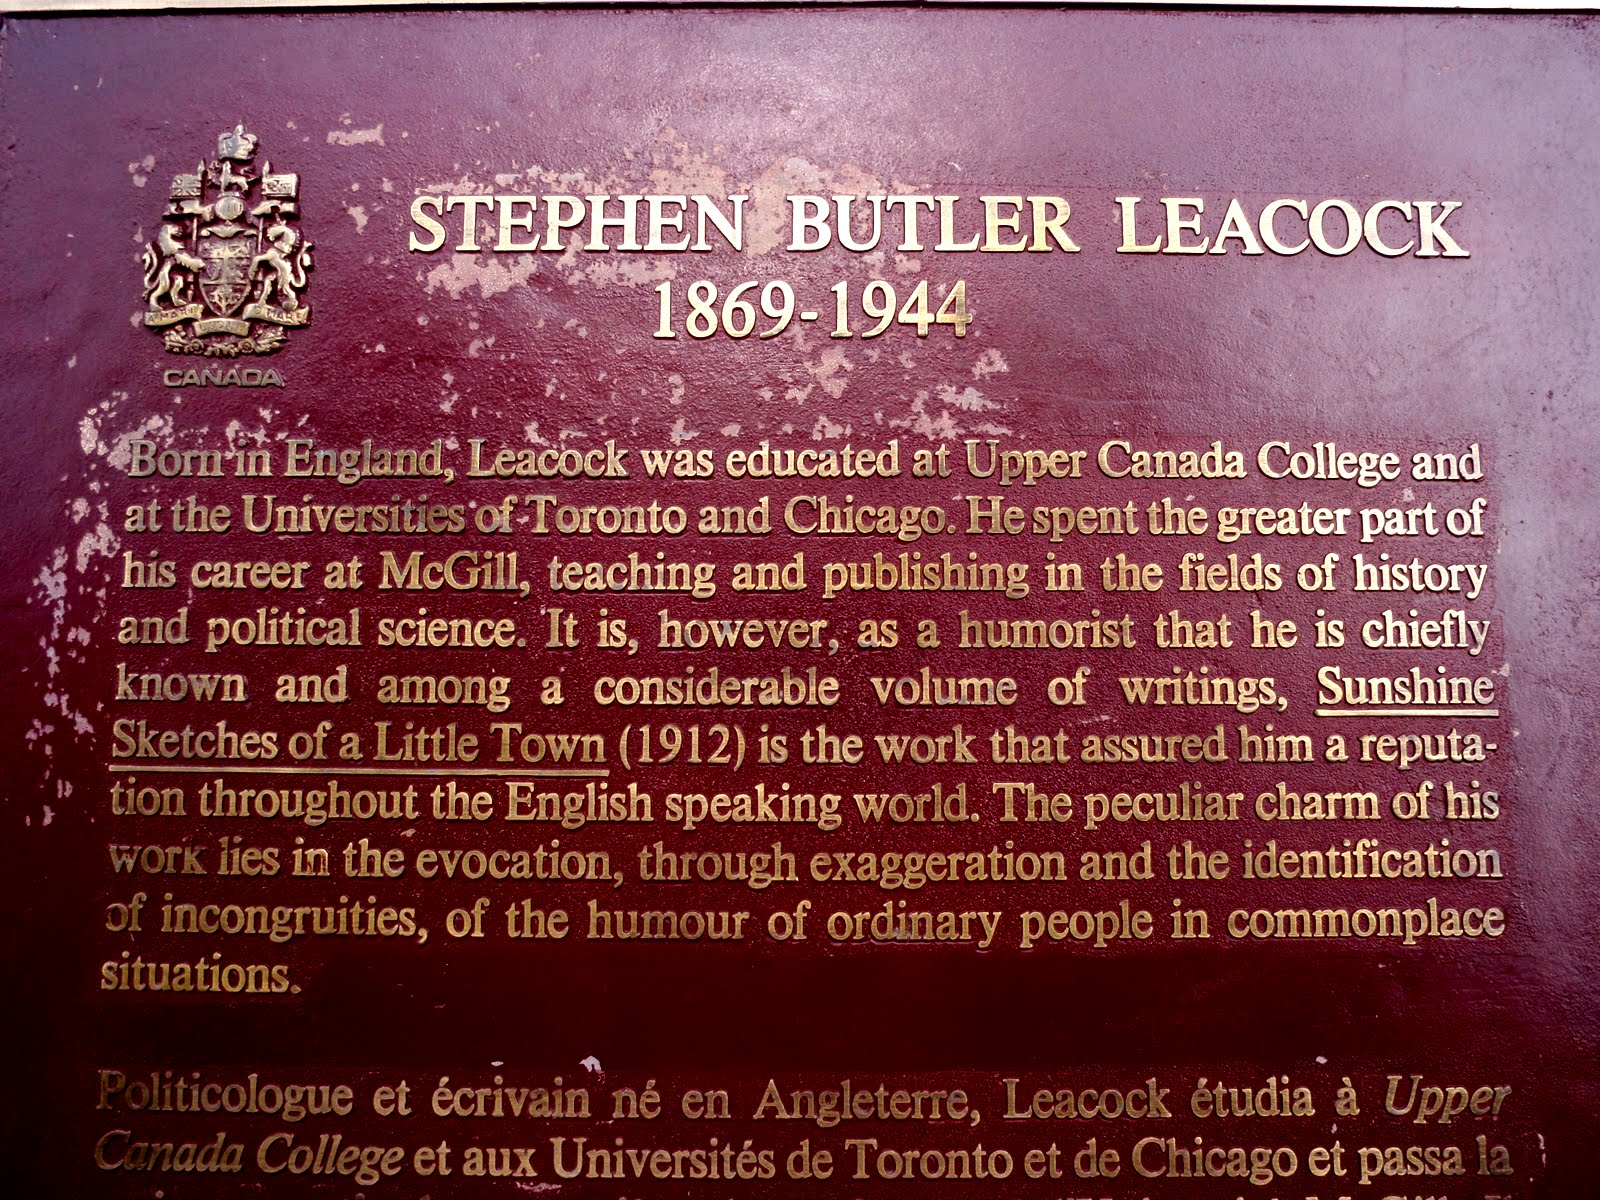 Stephen Leacock: Humour and Humanity